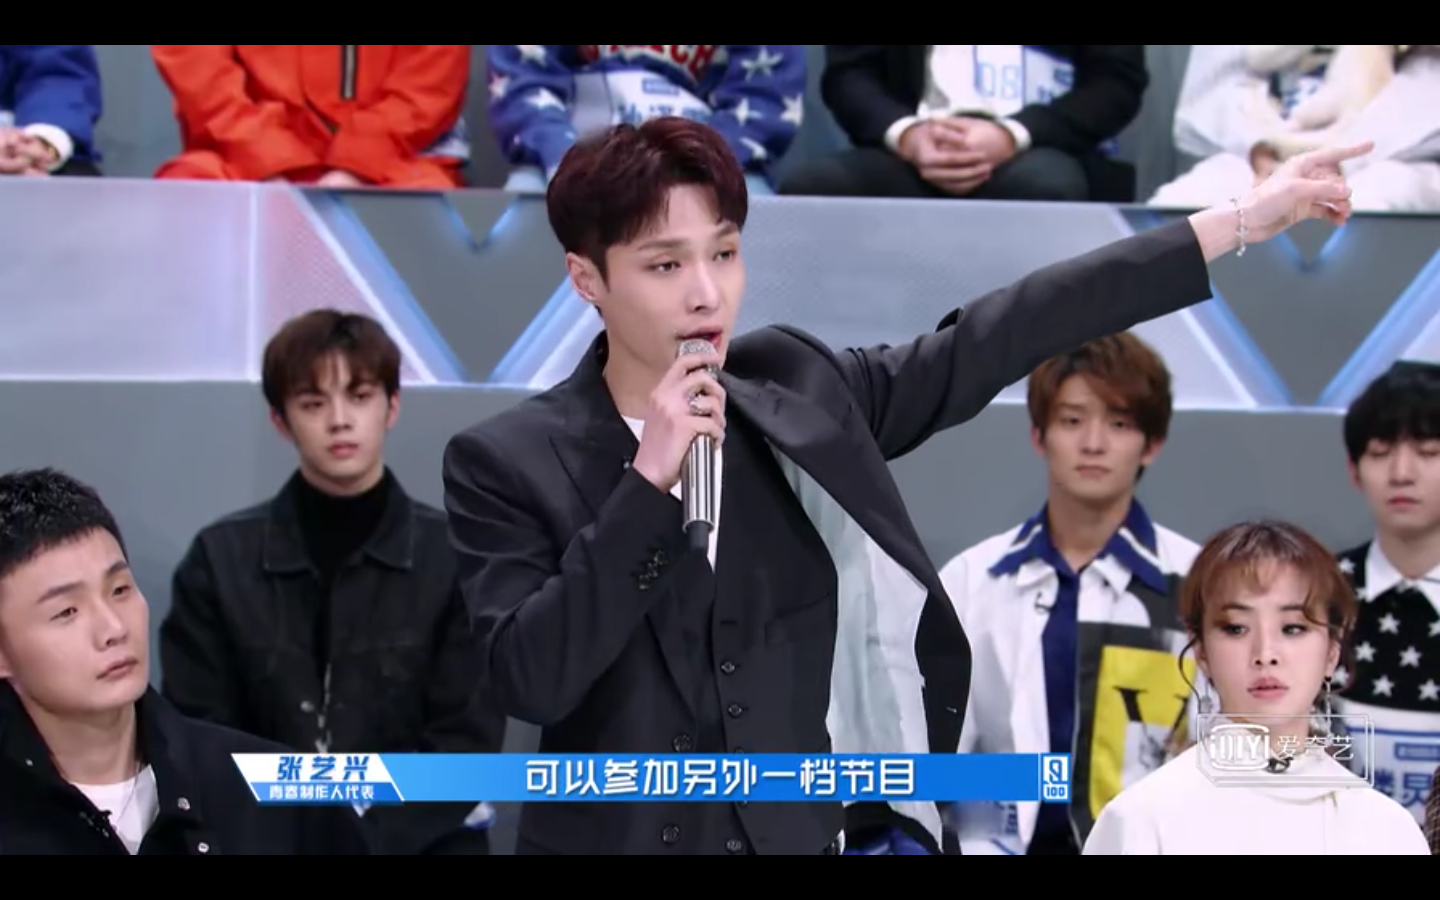 Chinese Boy Band TV Show